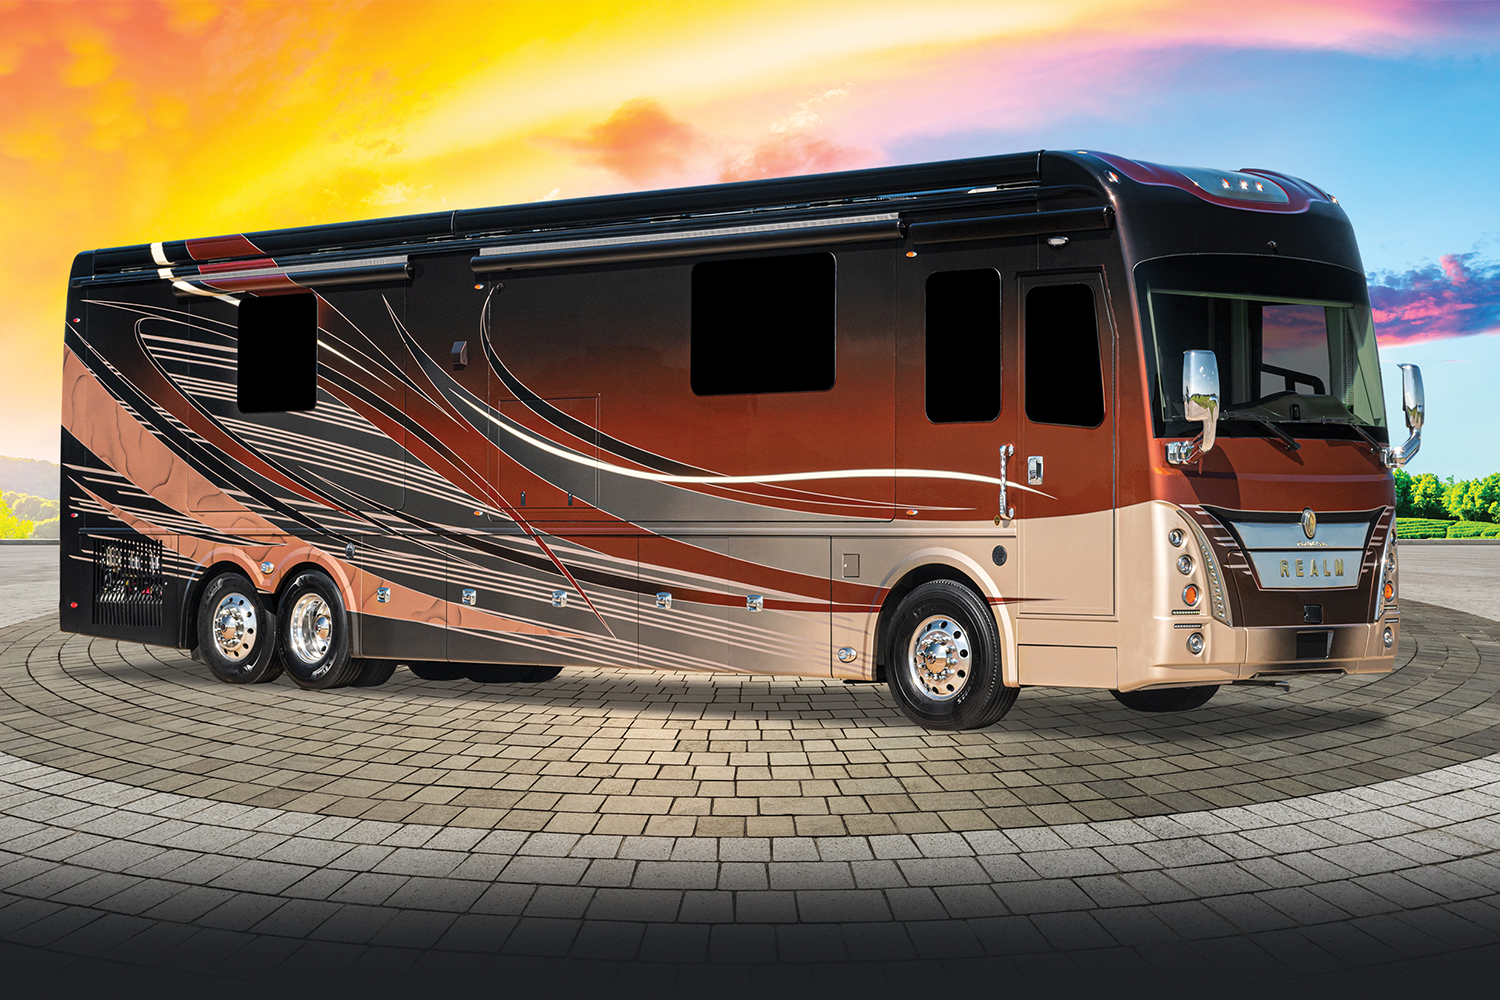 Foretravel Realm FS6 Presidential edition motorhome